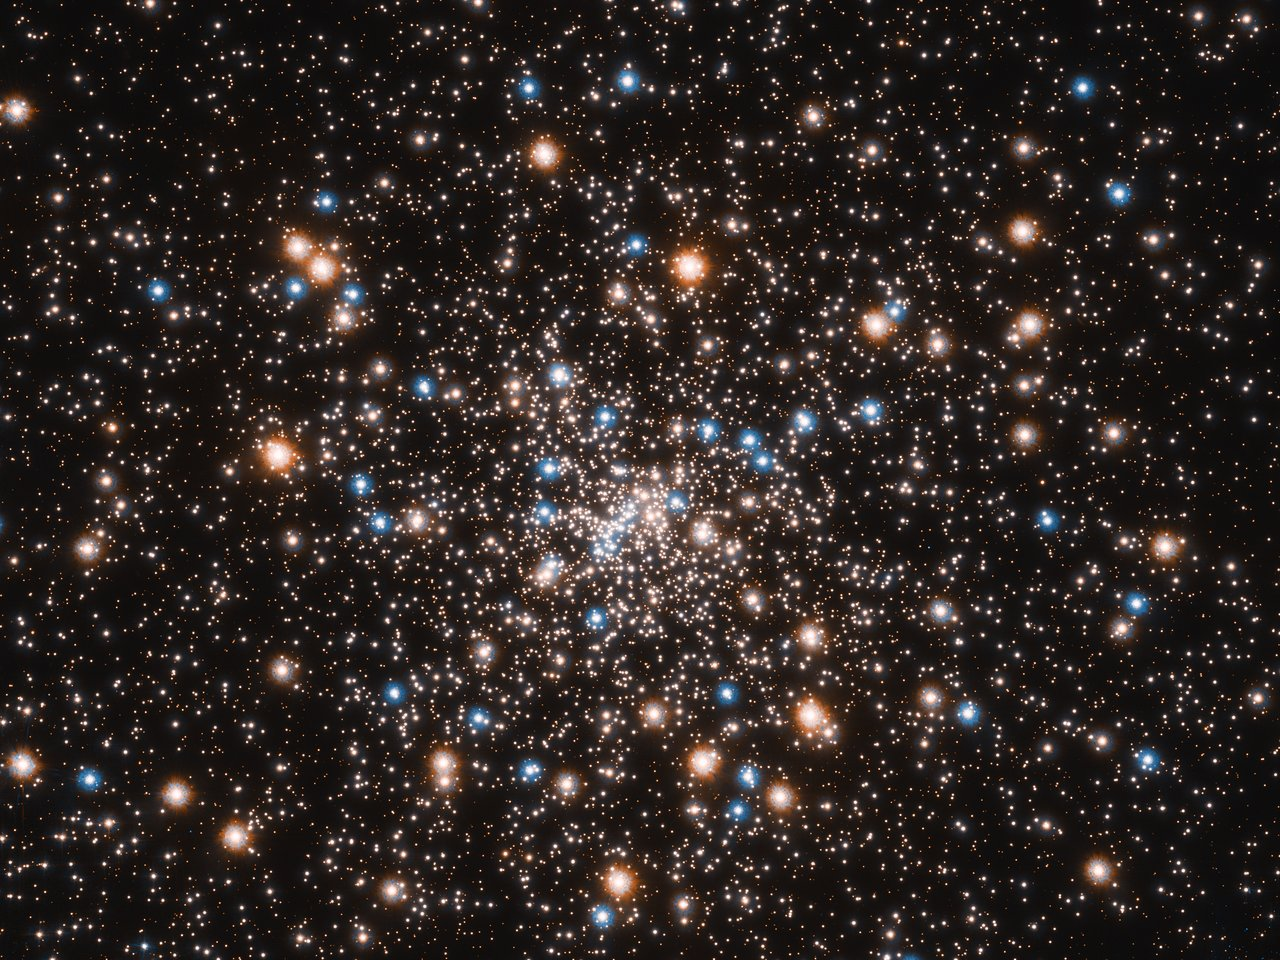 Science Release: Hubble Uncovers Concentration of Small Black Holes